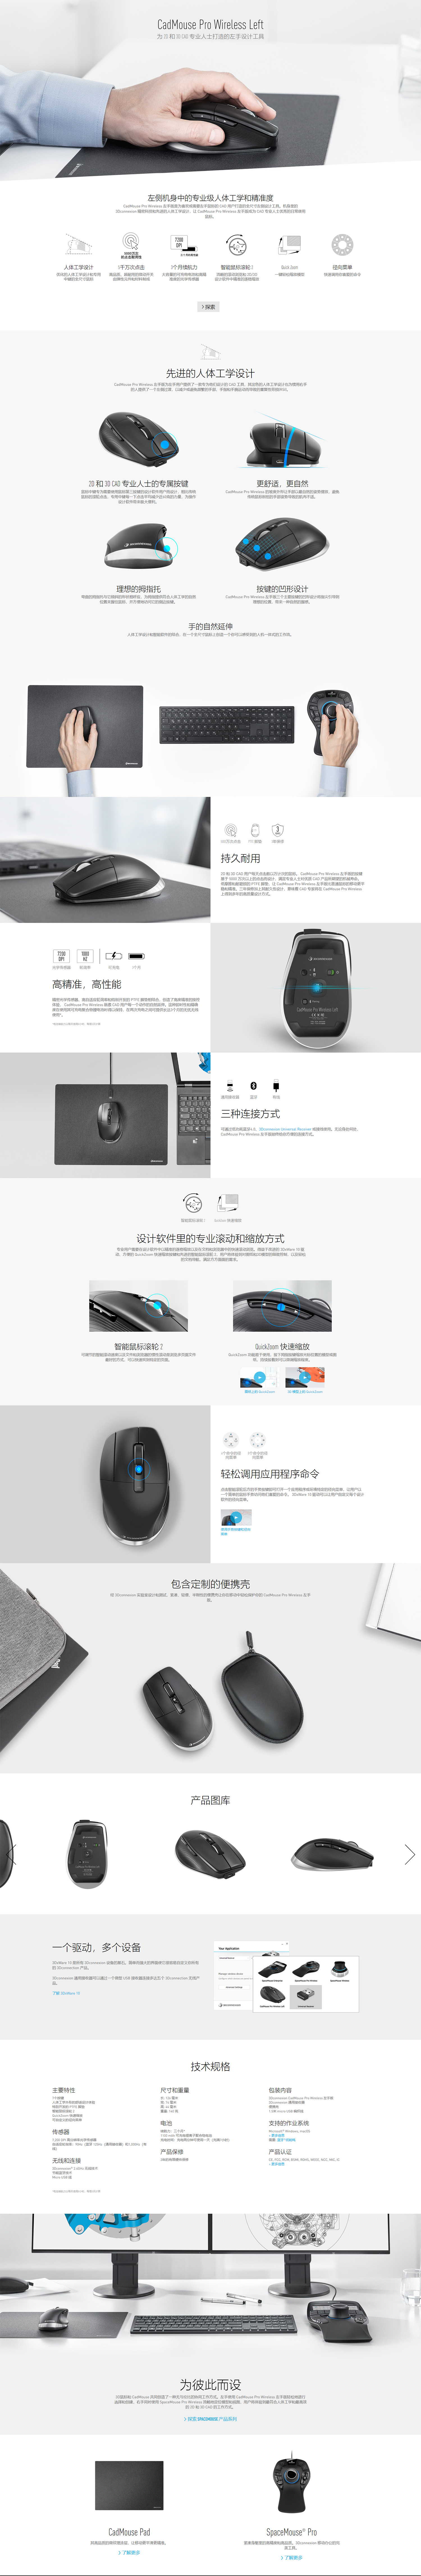 CadMouse Pro Wireless Left.jpg